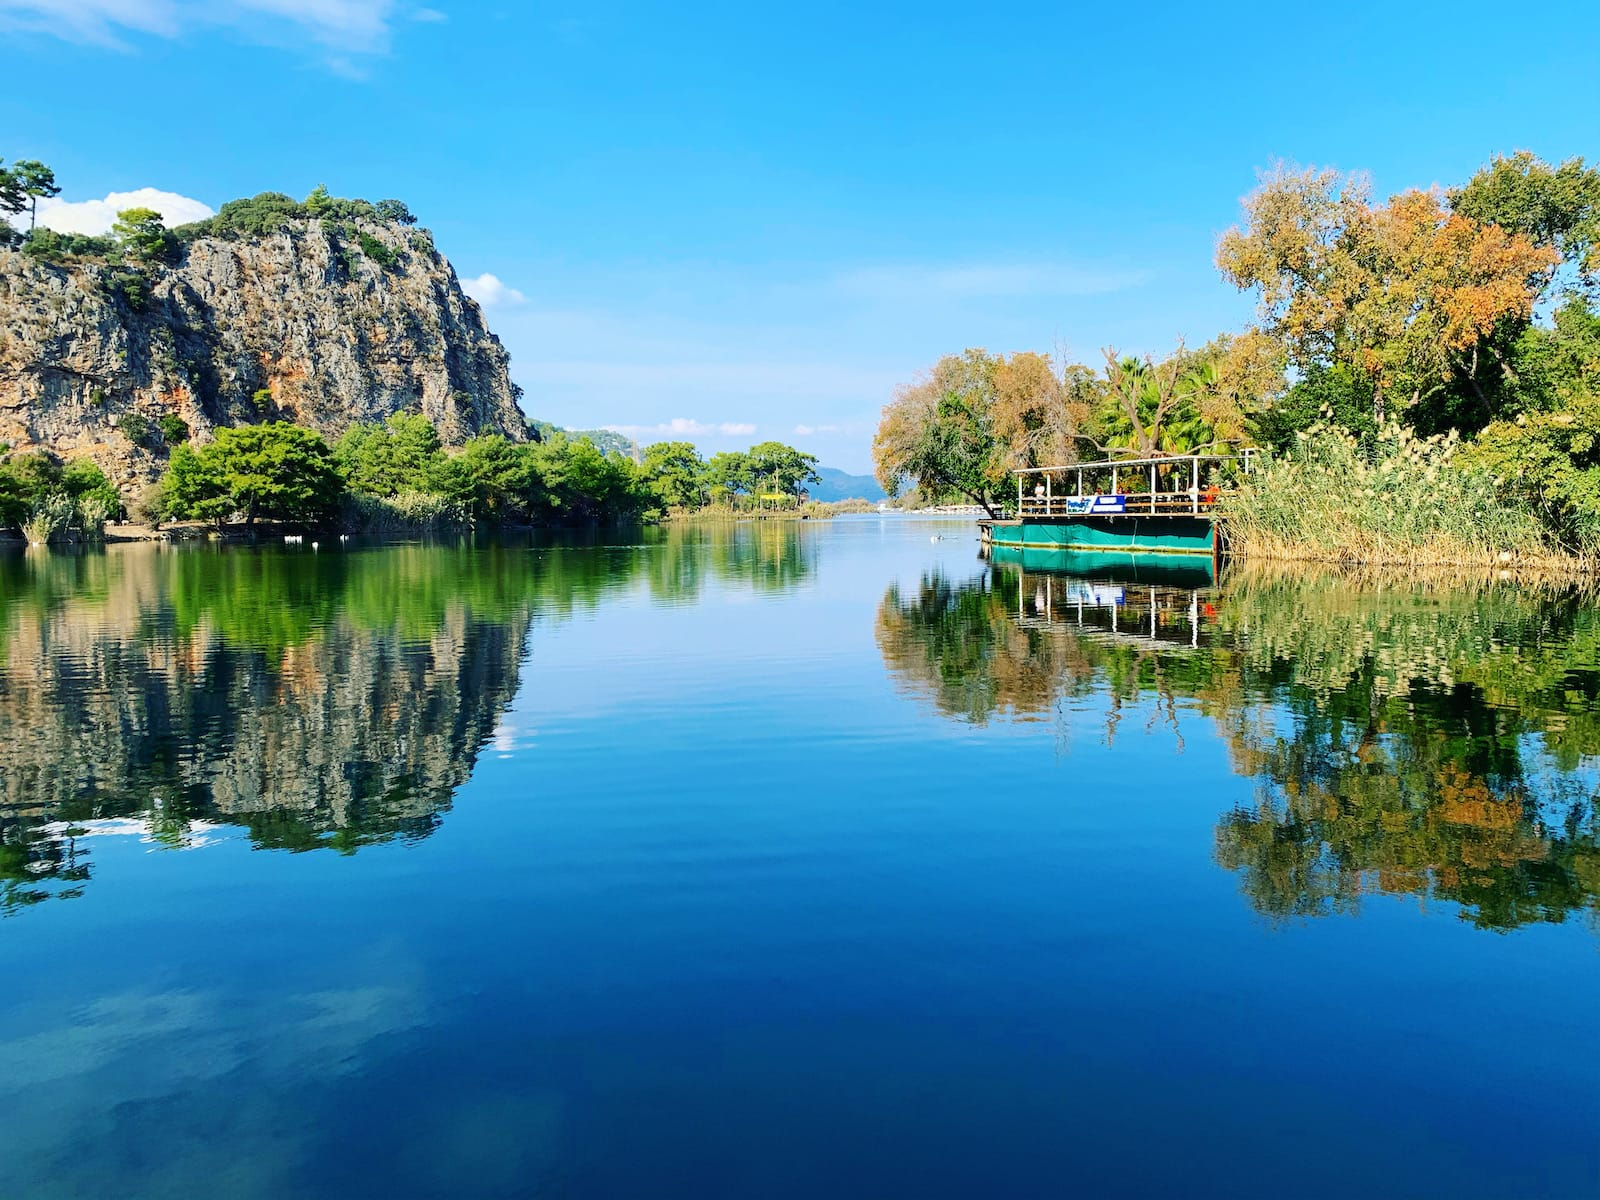 lake koycegiz dalyan turkey